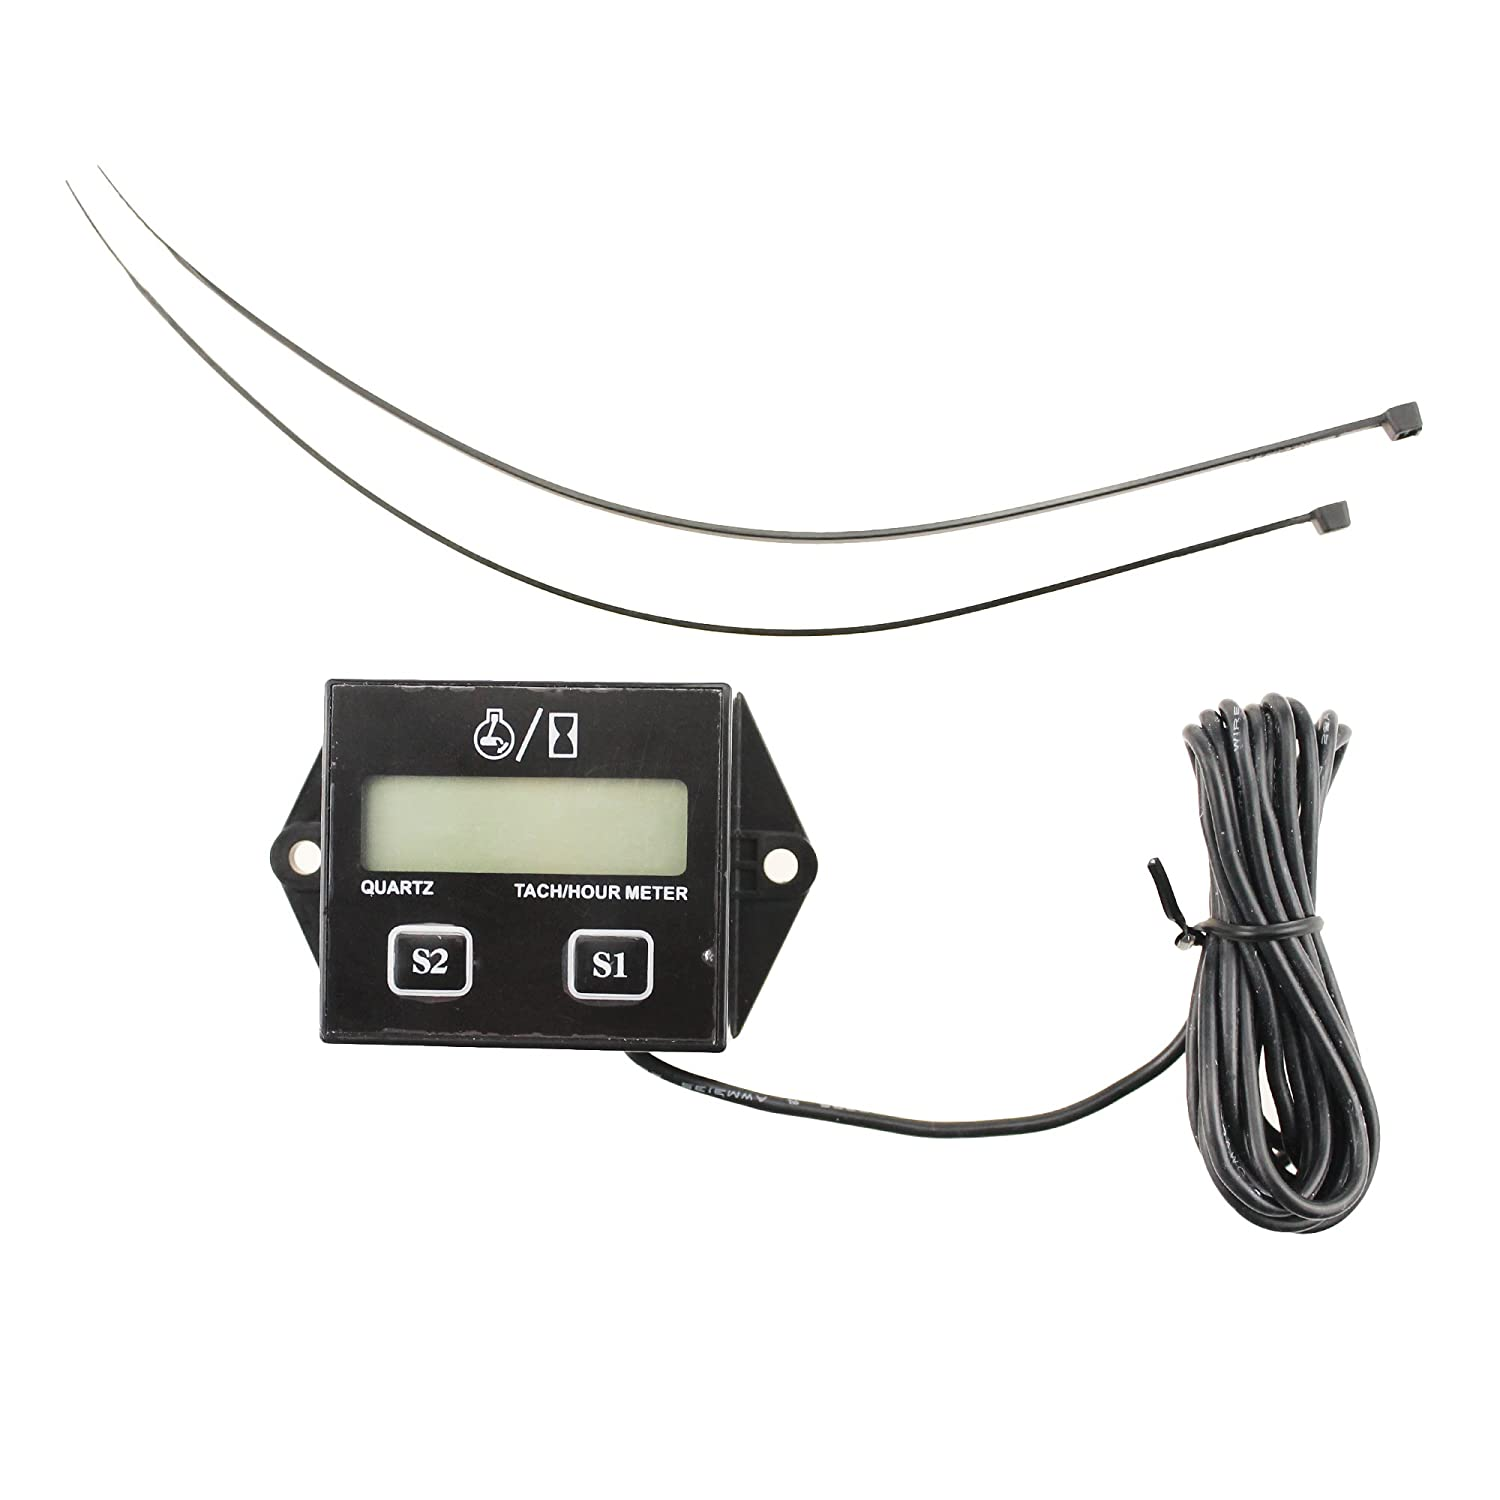 Iztoss Lcd Display Digital Tachometer Rpm Tacho Gauge Tach Wiring Diagram On A 87 Ford F150 In Addition Diesel Hour Meter For Motorcycle Boat Engines Automotive